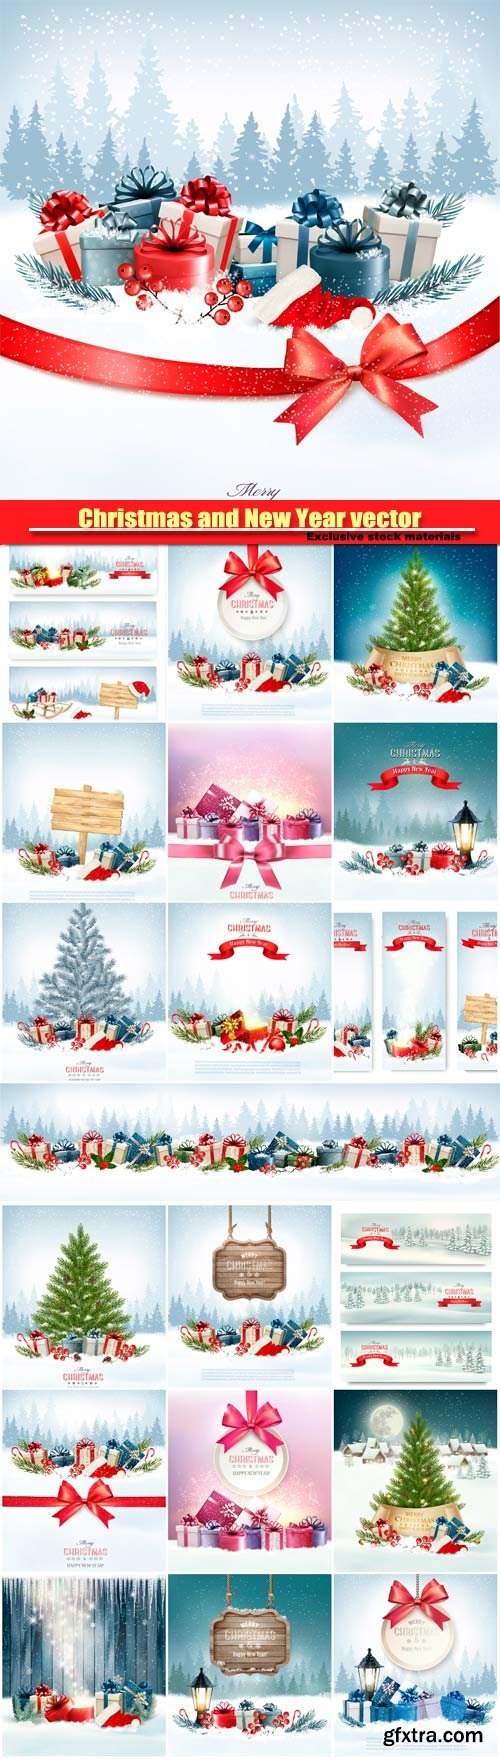 Christmas and New Year vector, holiday background, christmas tree and presents